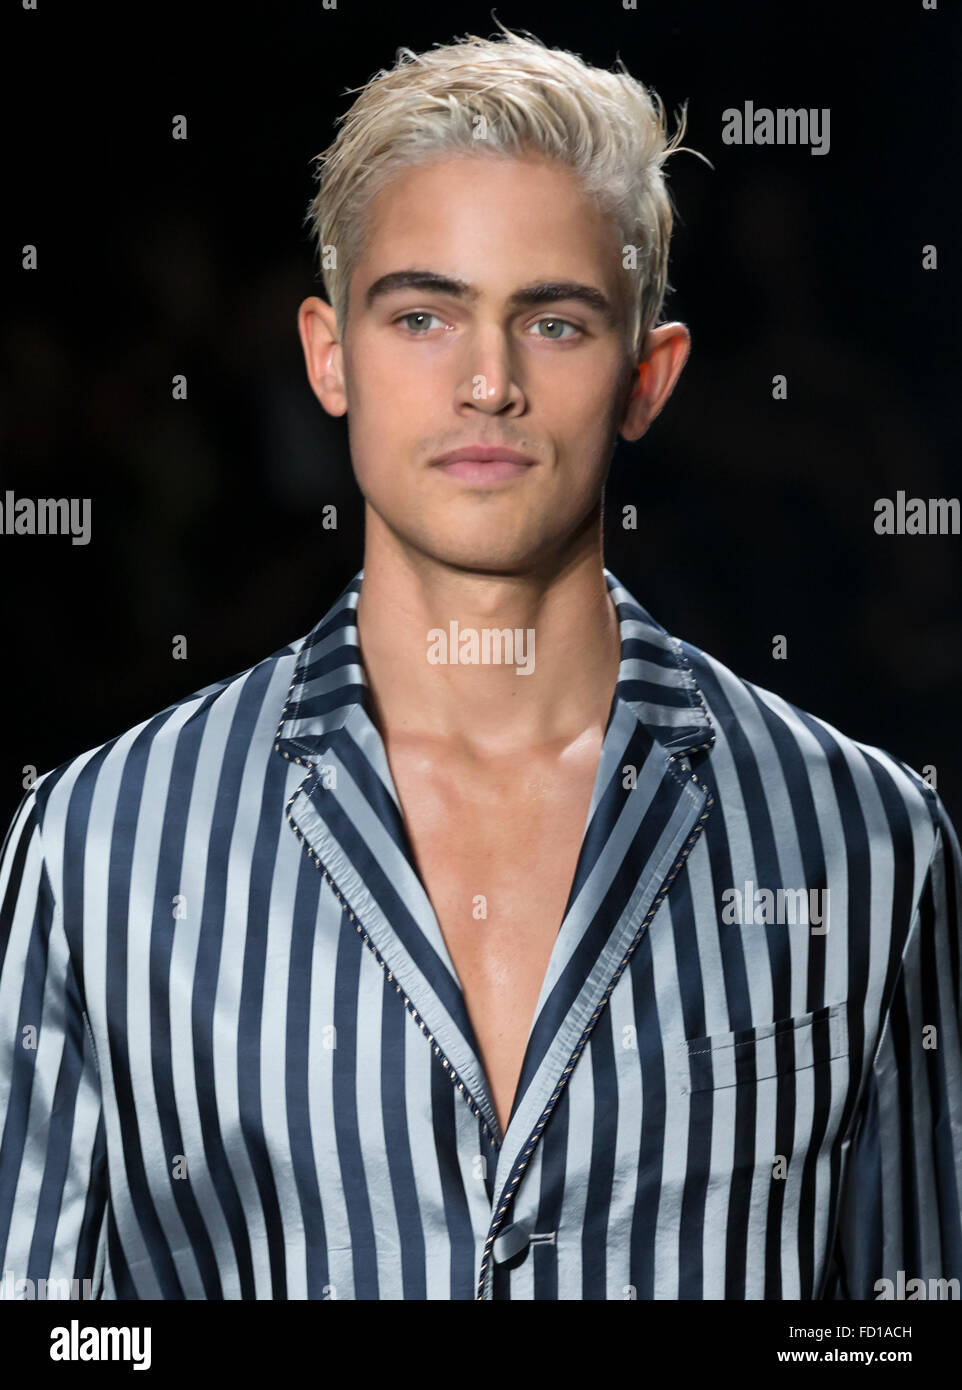 NEW YORK, NY - JULY 14, 2015: Brett MacDonnell walks the runway during the Concept Korea show at NYFW Men's S/S - Stock Image